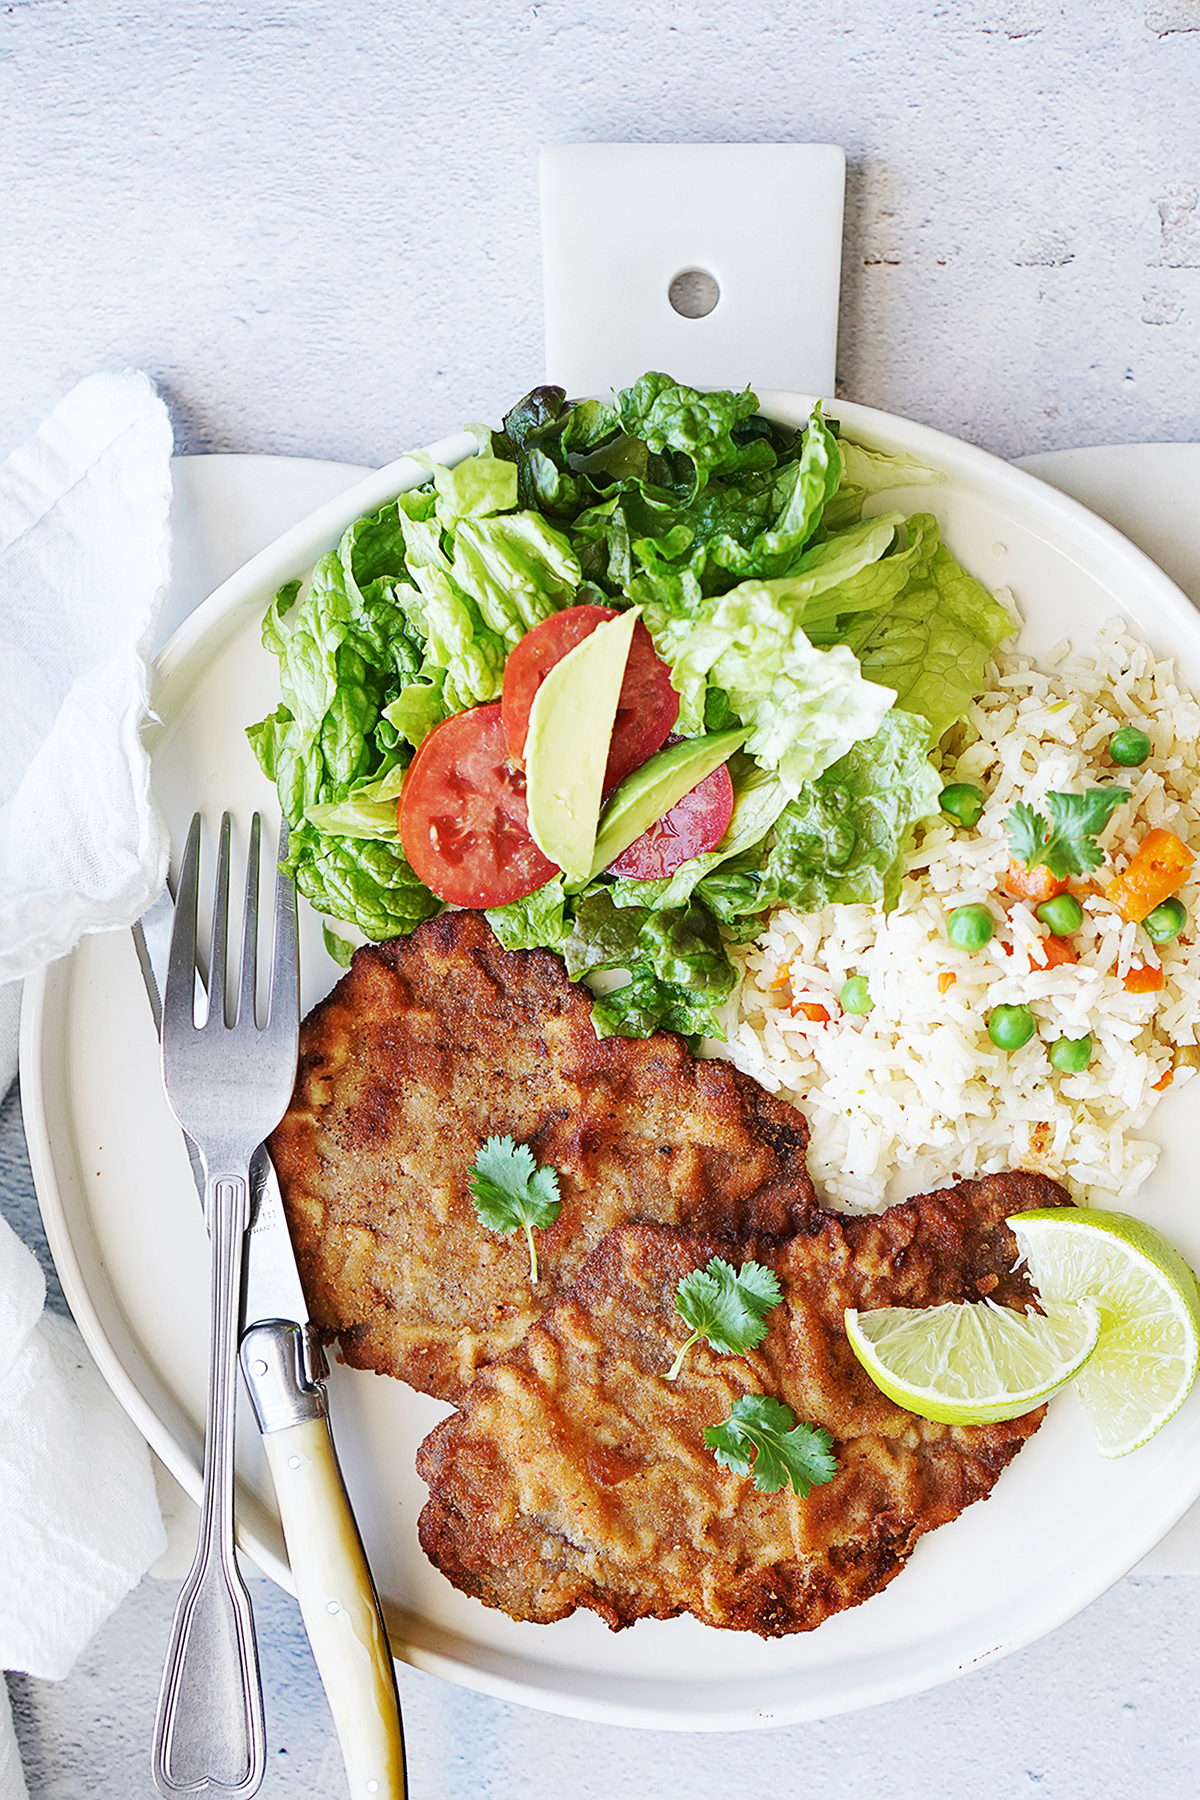 A plate with breaded steaks, salad and white rice with a fork and knife on the side